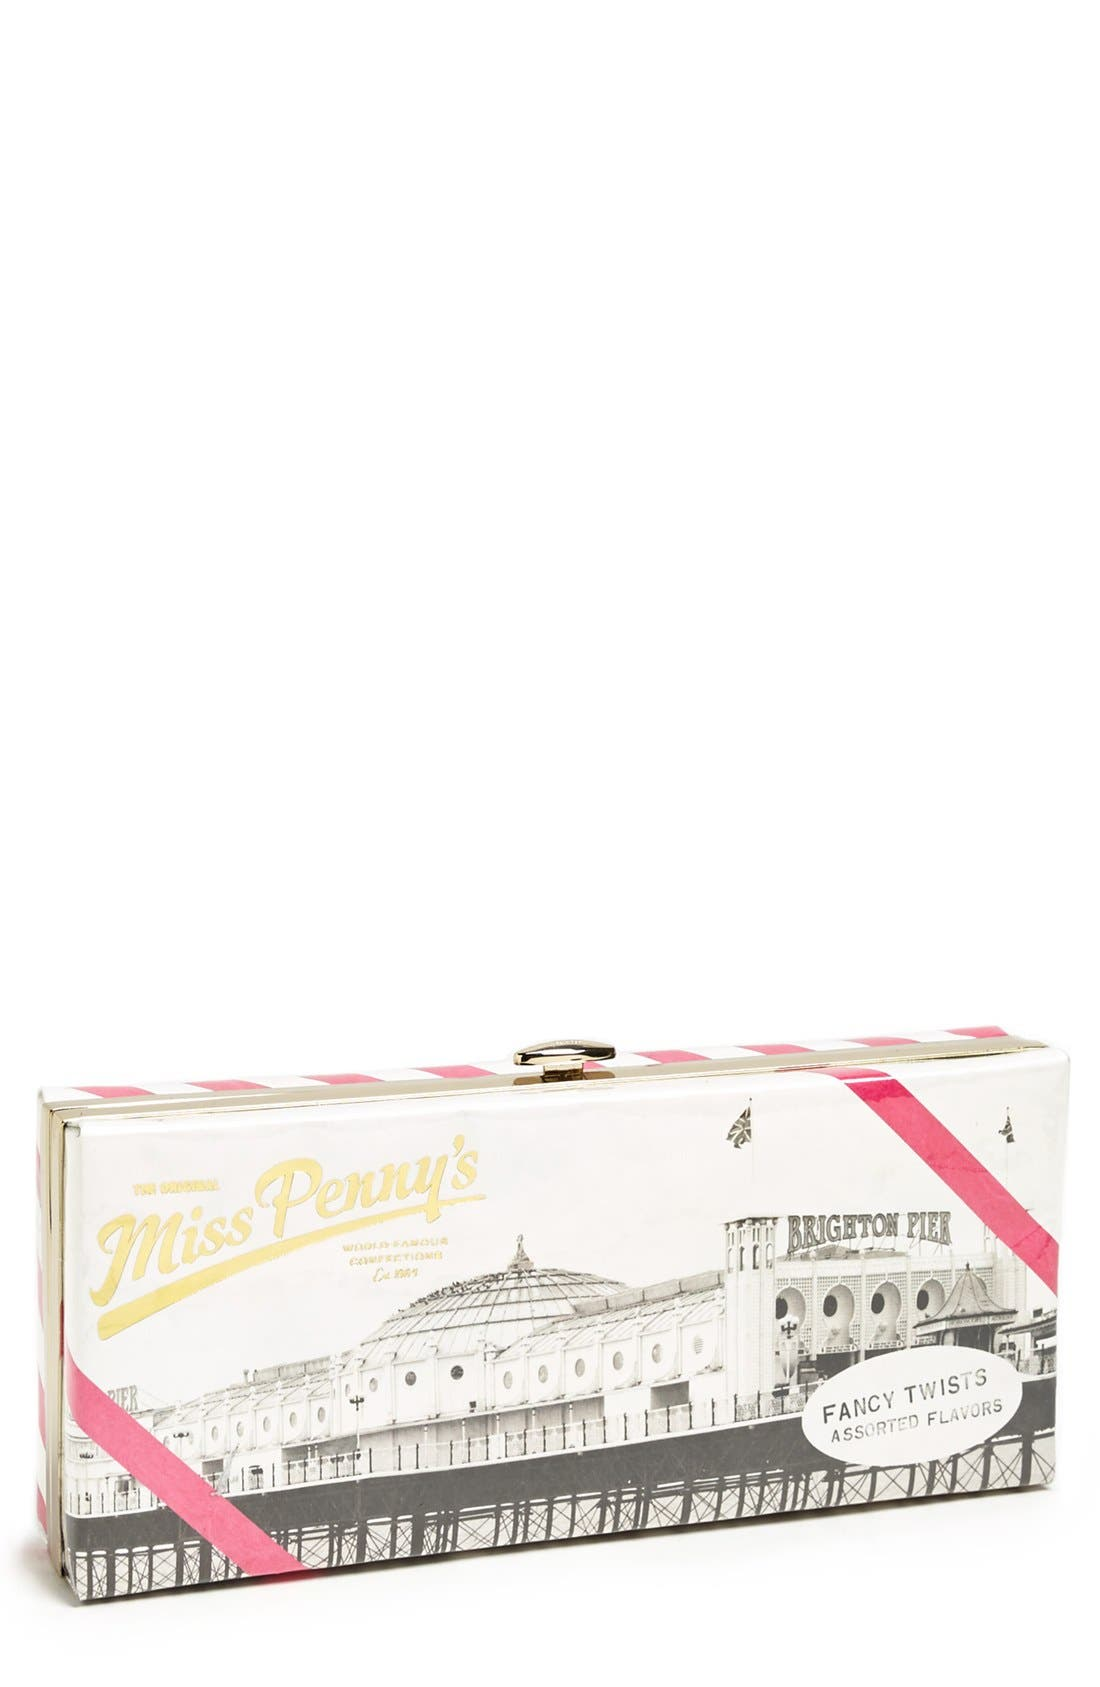 Alternate Image 1 Selected - kate spade new york 'the original miss penny's ' box clutch